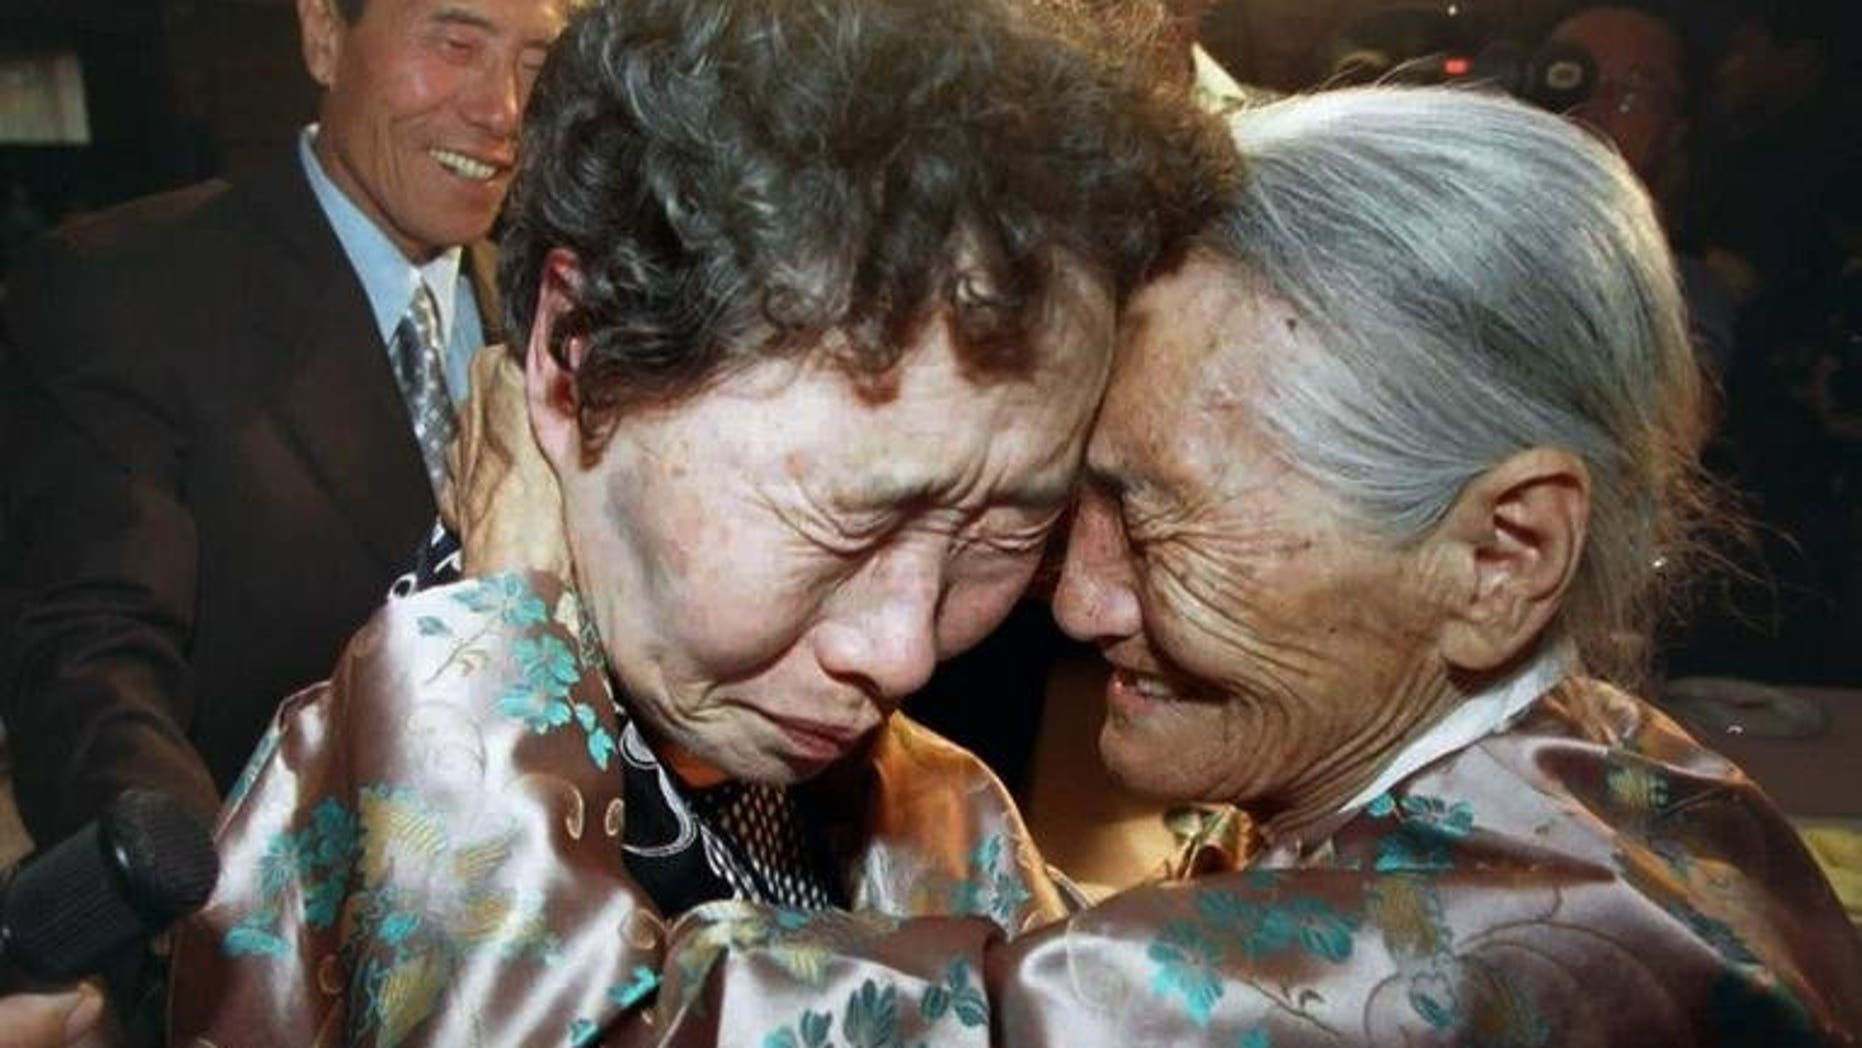 North Korea's Chung Duck-Hwa (right) embraces Chung Myung-Hoi -- her long-separated sister from South Korea -- during a family reunion in Pyongyang, on August 15, 2000. North Korea has retracted its proposal to hold talks with South Korea on restarting a family reunion programme, a Seoul official has told AFP.